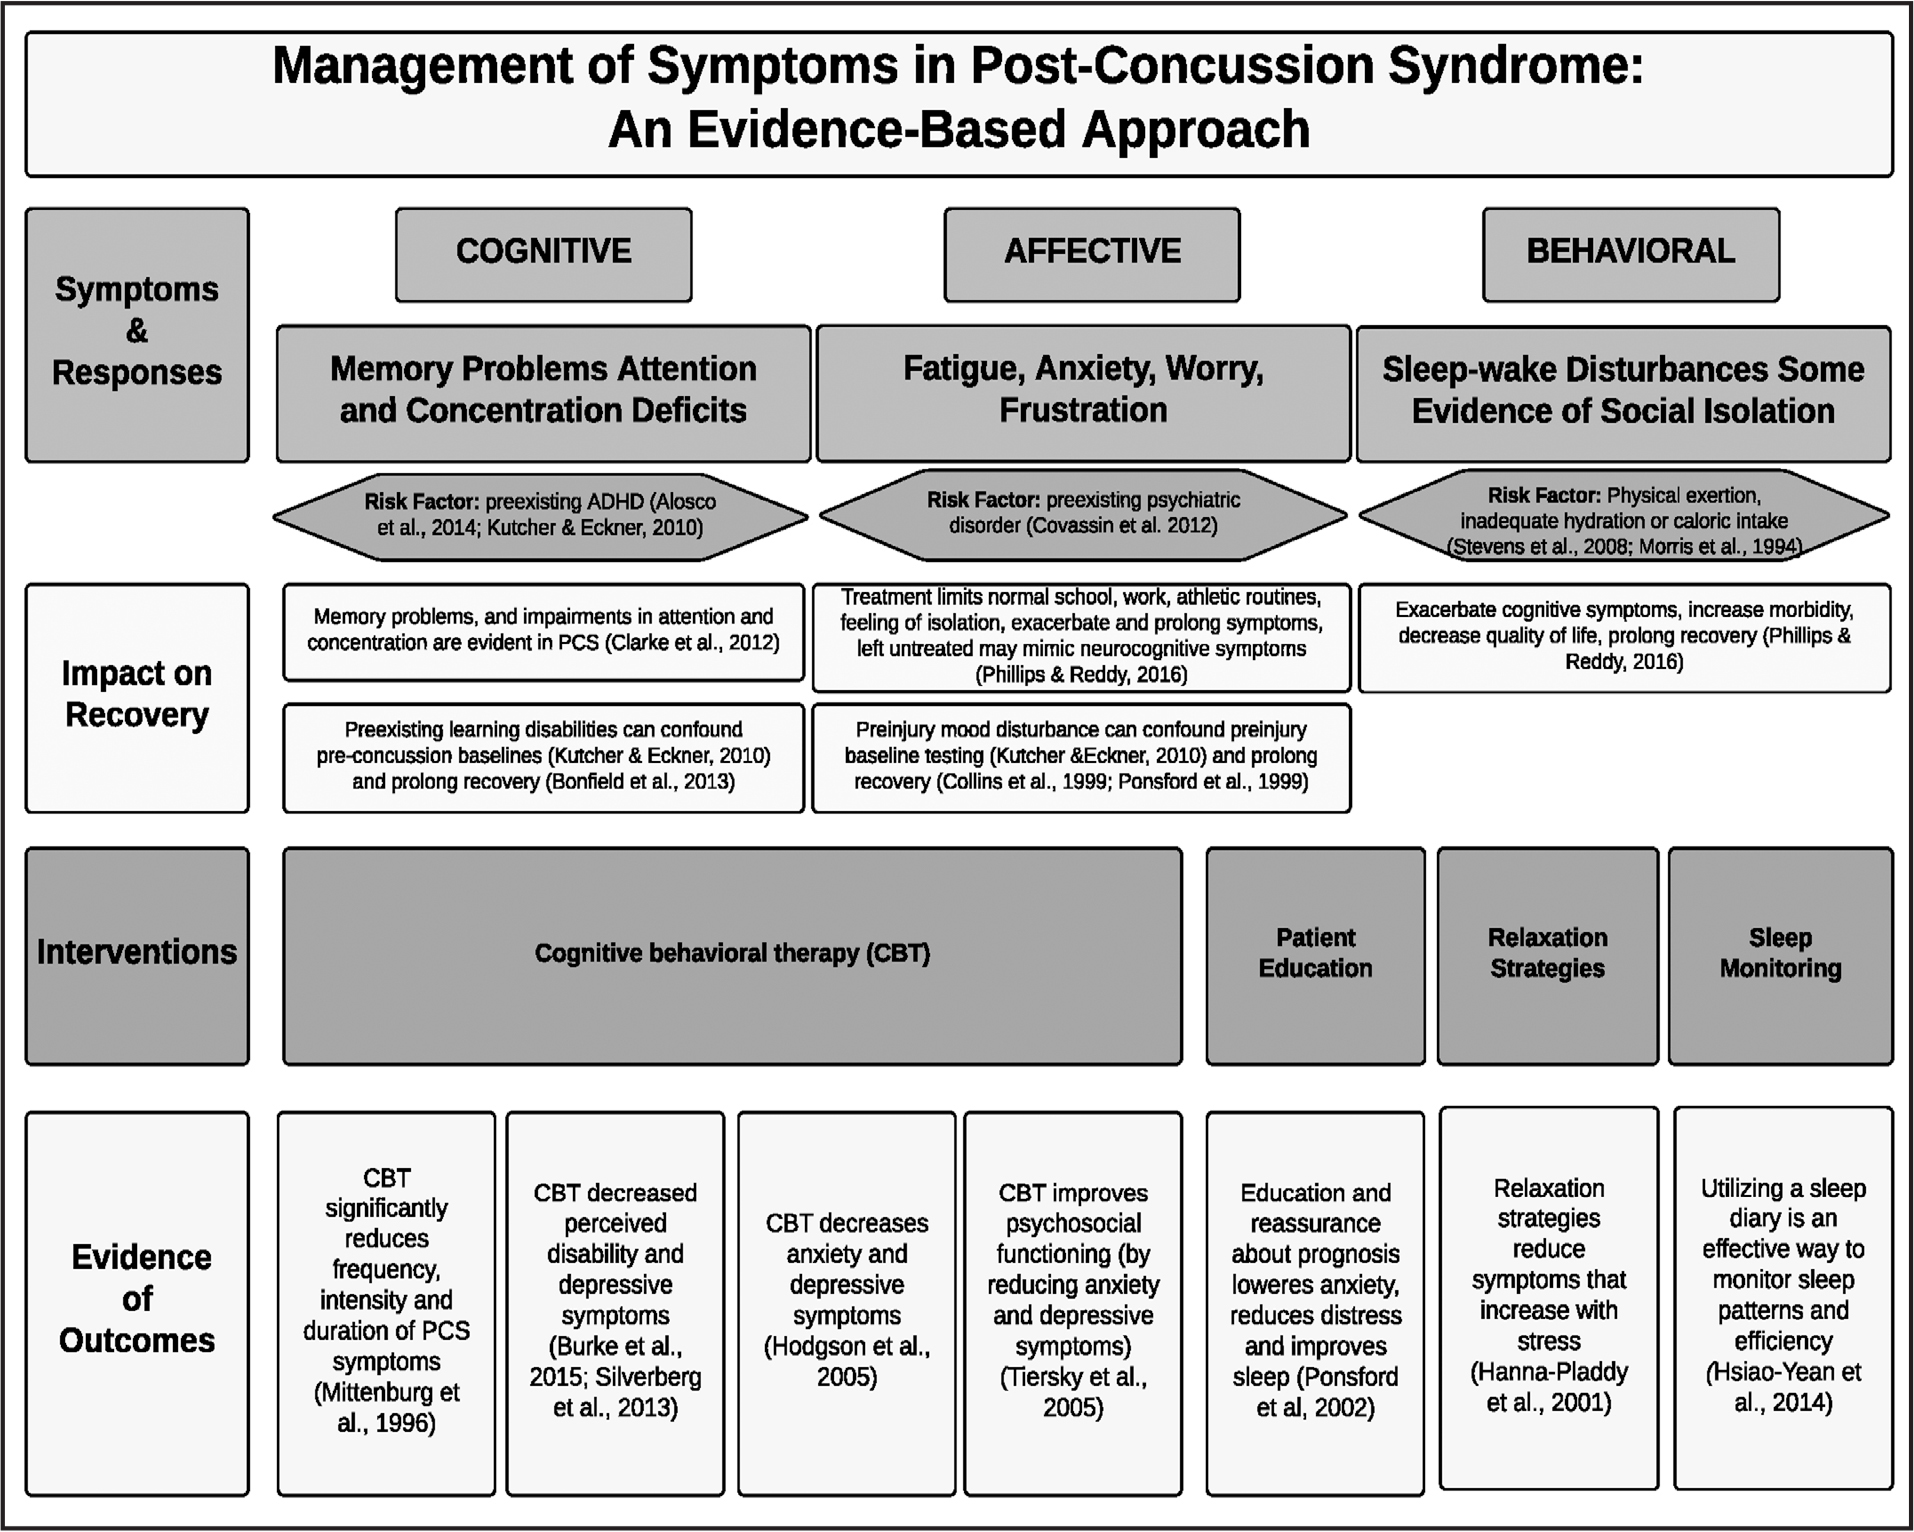 Evidence-based approach to post-concussion symptom management. ADHD = attention-deficit/hyperactivity disorder; PCS = post-concussion syndrome